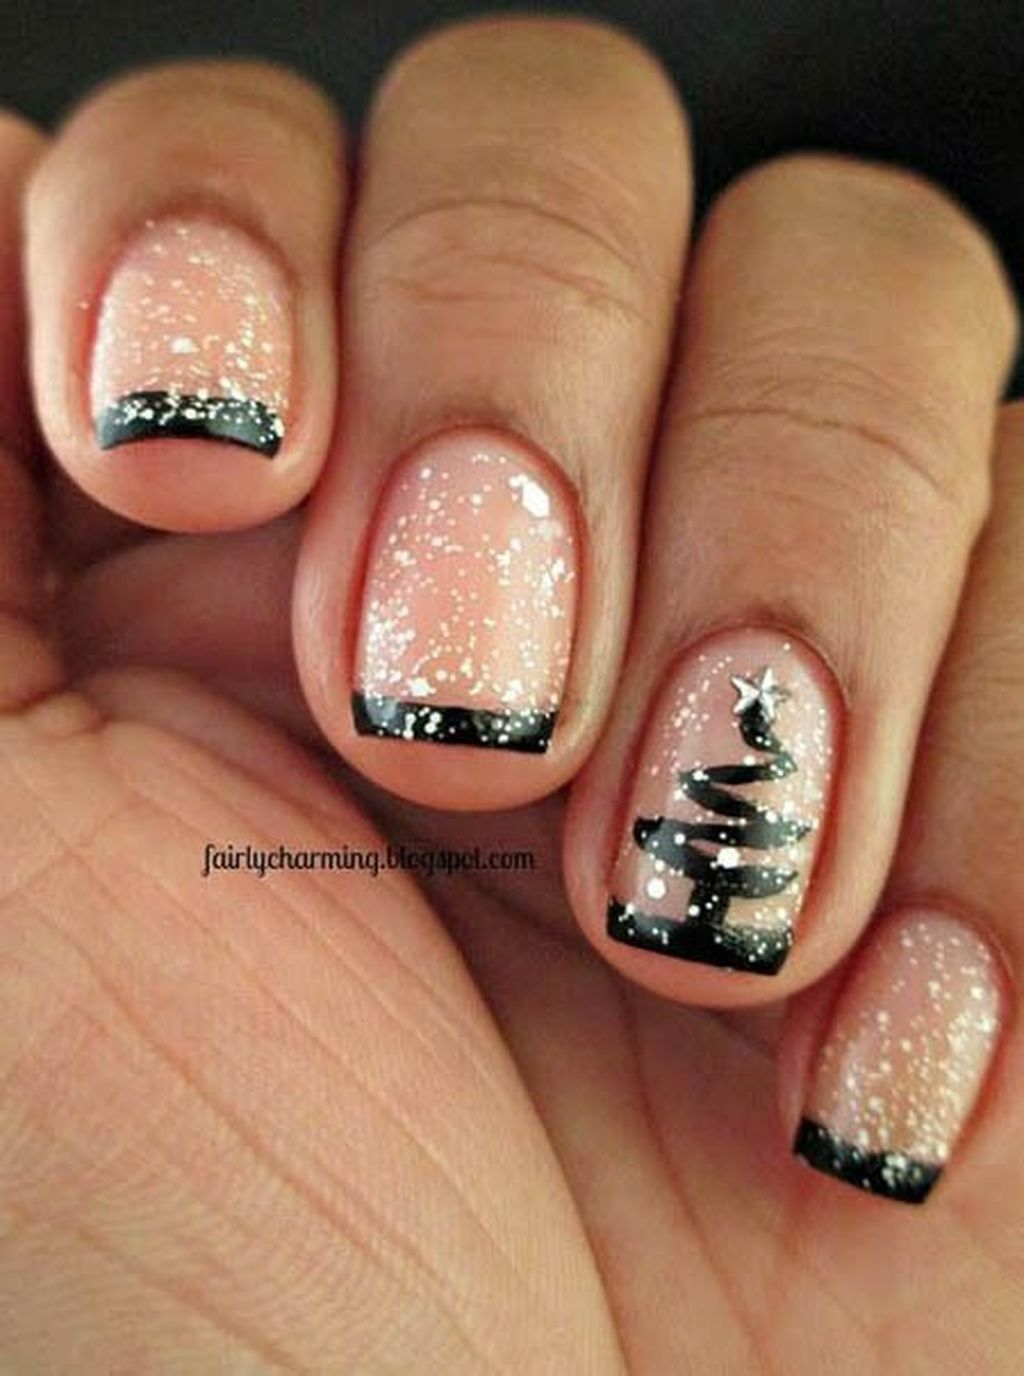 Watch 15 Glitter Manicure Ideas For Winter Holidays video